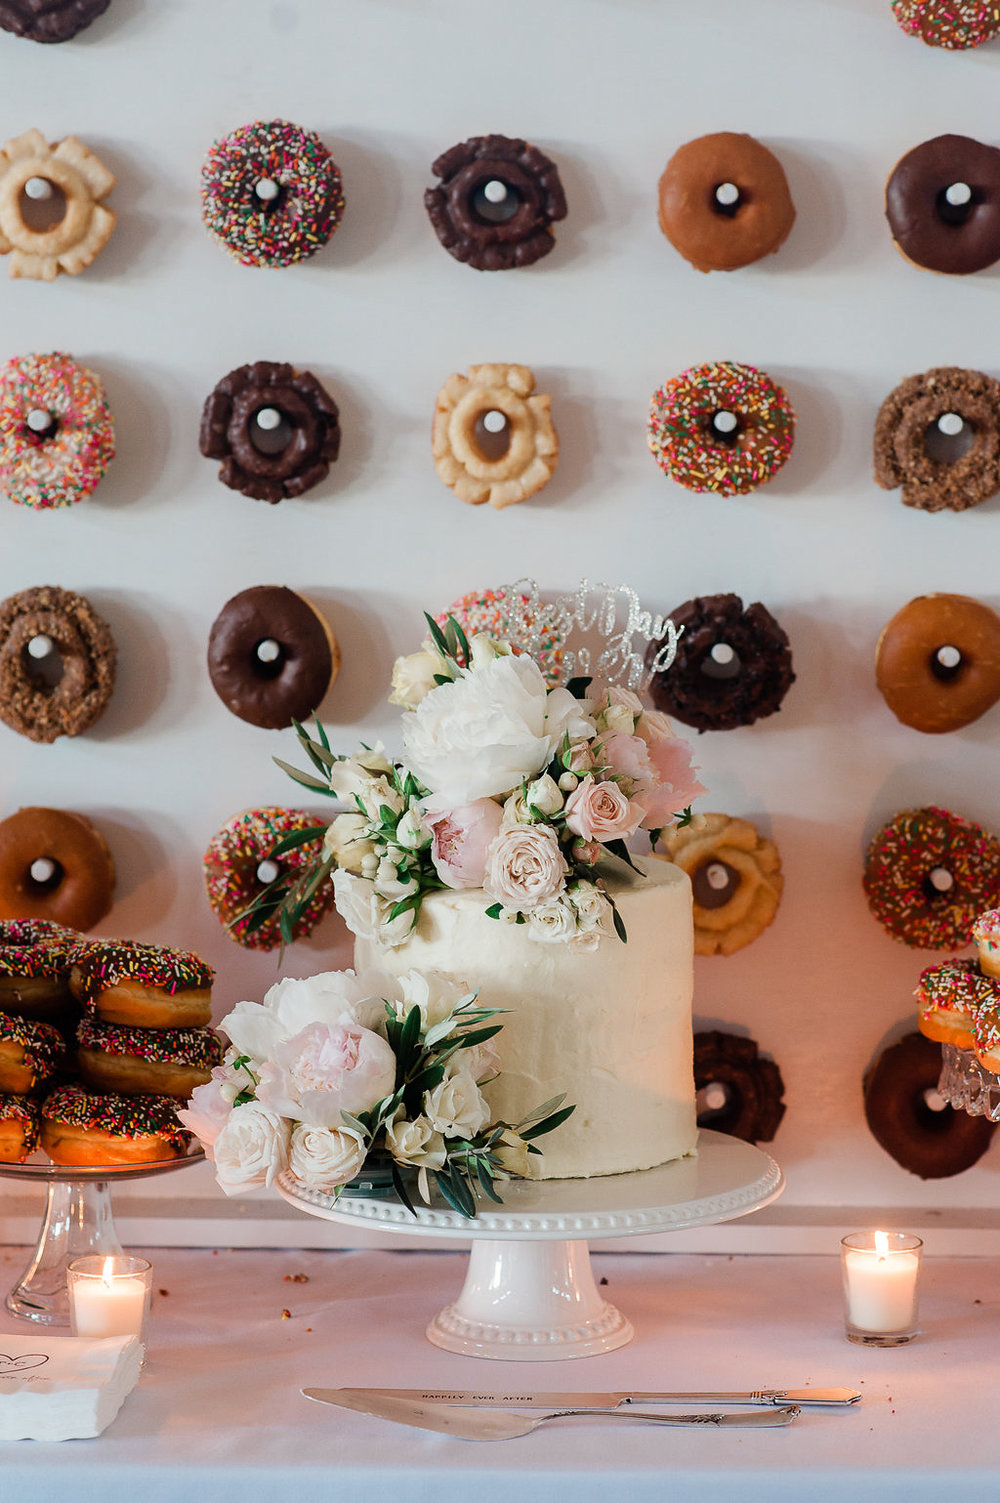 Park Winters Summer Wedding | Wedding Dessert | Wedding Donuts | Donut Wall | Unique Wedding Dessert Ideas | Two-tier wedding cake | Fresh flower wedding cake